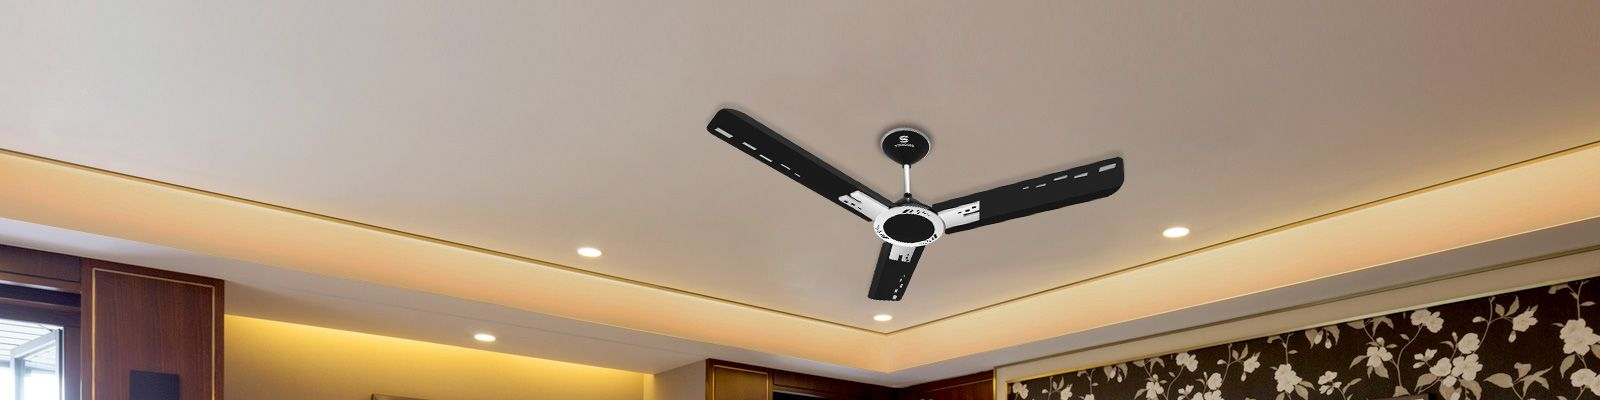 Fans An Amalgamation Of Aesthetics And Technology Best Ceiling